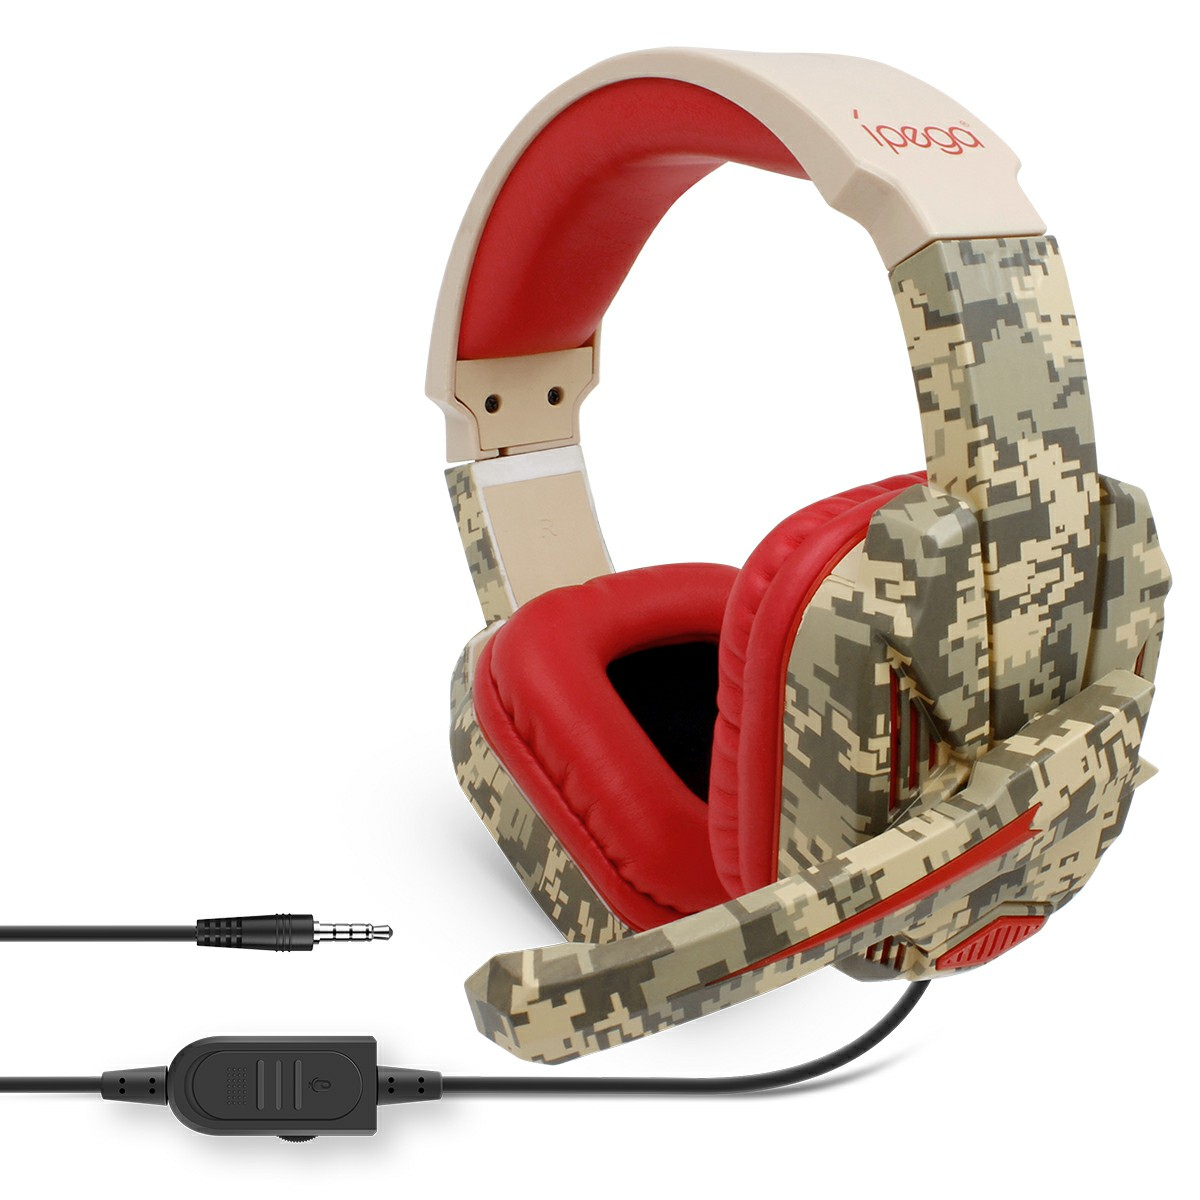 Ipega-r005 head game headset